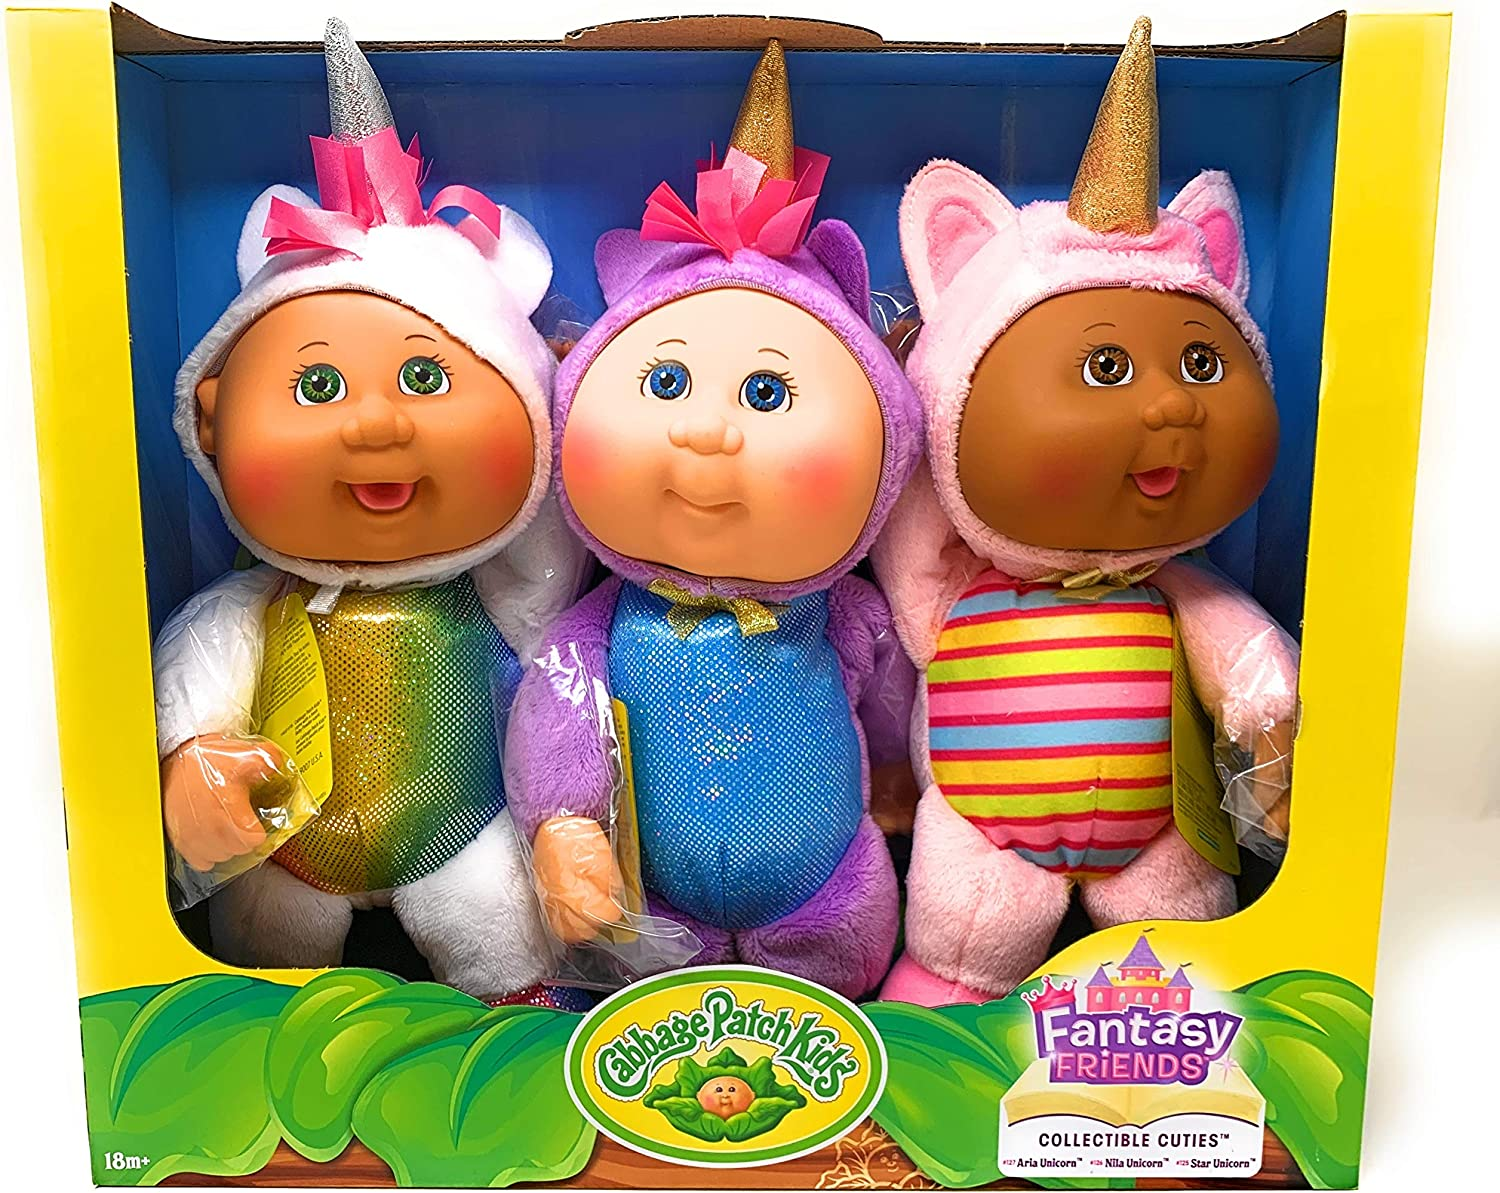 Cabbage Patch Kids Collectible Cuties Fantasy Friends